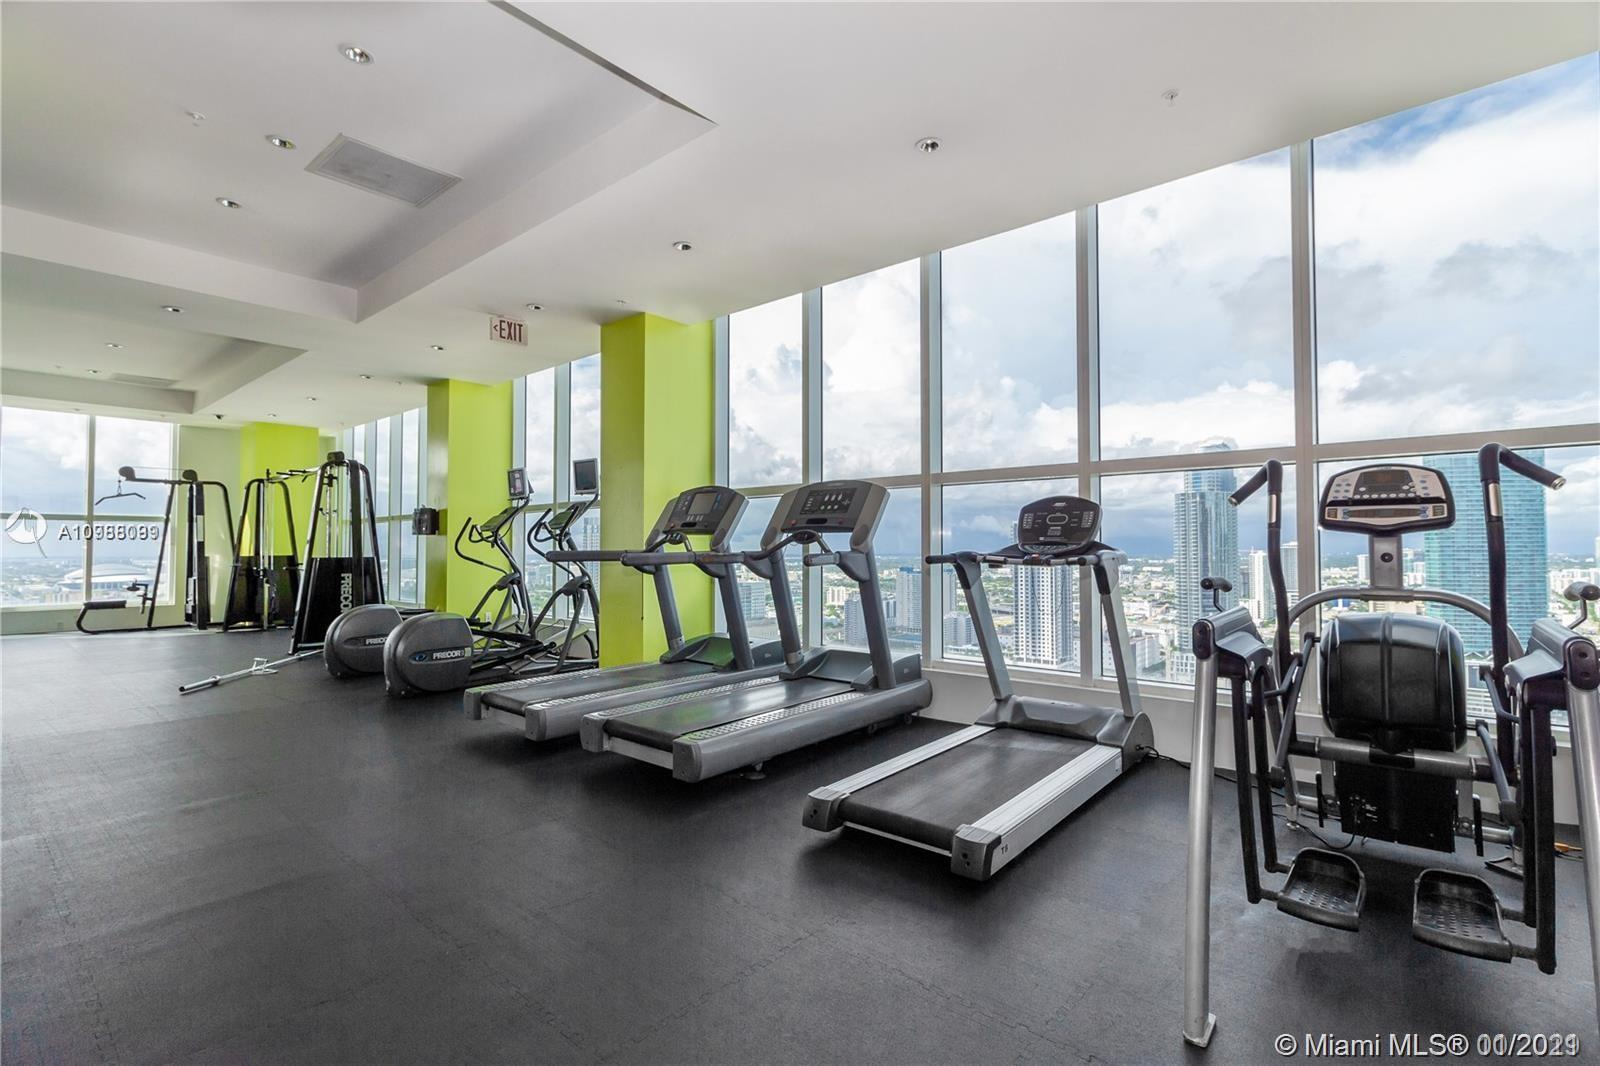 133 NE 2nd Ave # 219, Miami, Florida 33132, 2 Bedrooms Bedrooms, ,2 BathroomsBathrooms,Residential,For Sale,133 NE 2nd Ave # 219,A10988099